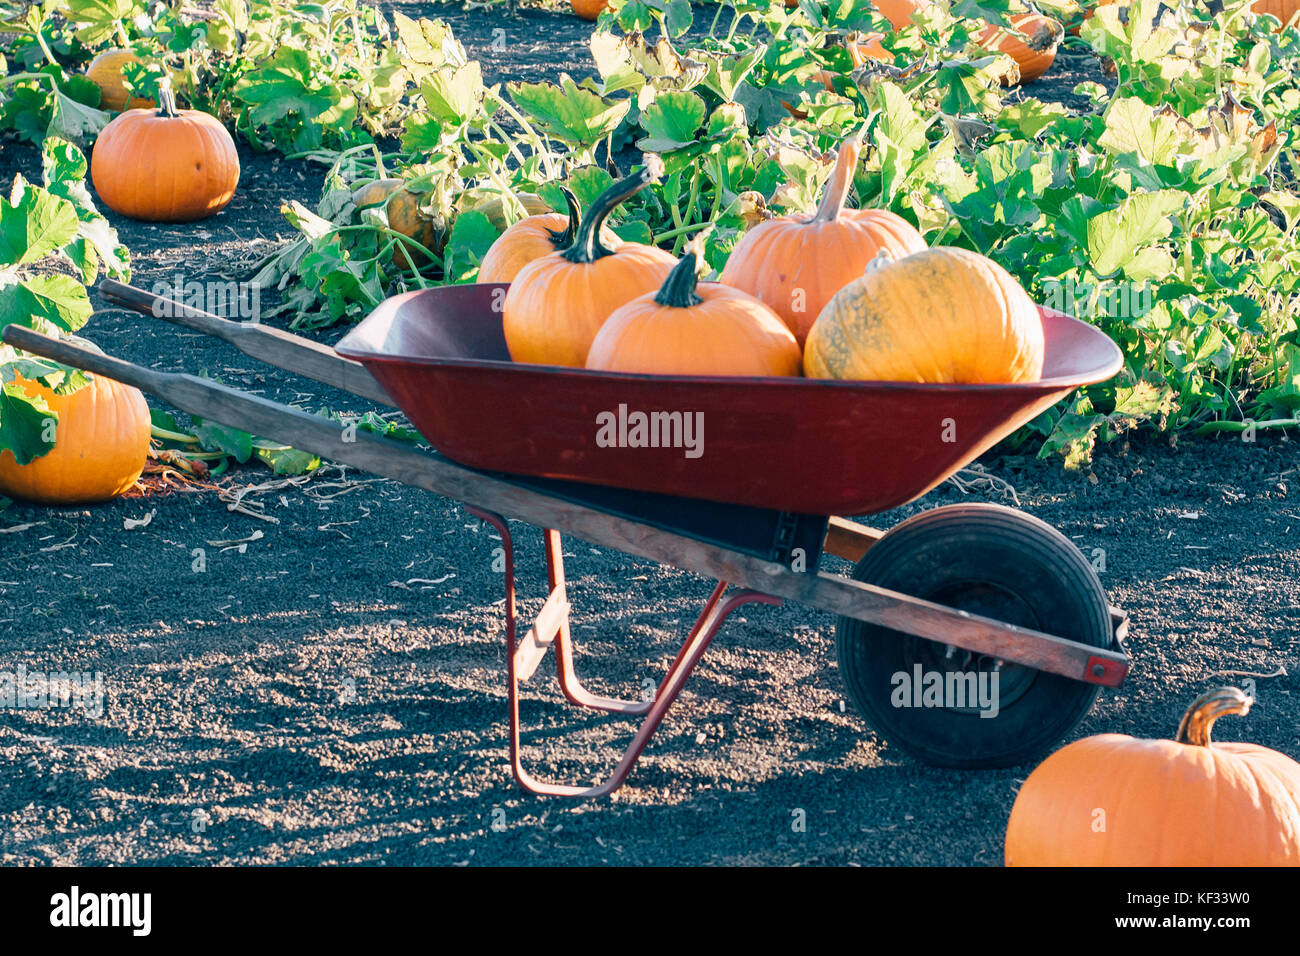 Fairytale pumpkins on a vine at golden hour in a pumpkin patch symbolizing October, November, Fall, or Autumn Stock Photo